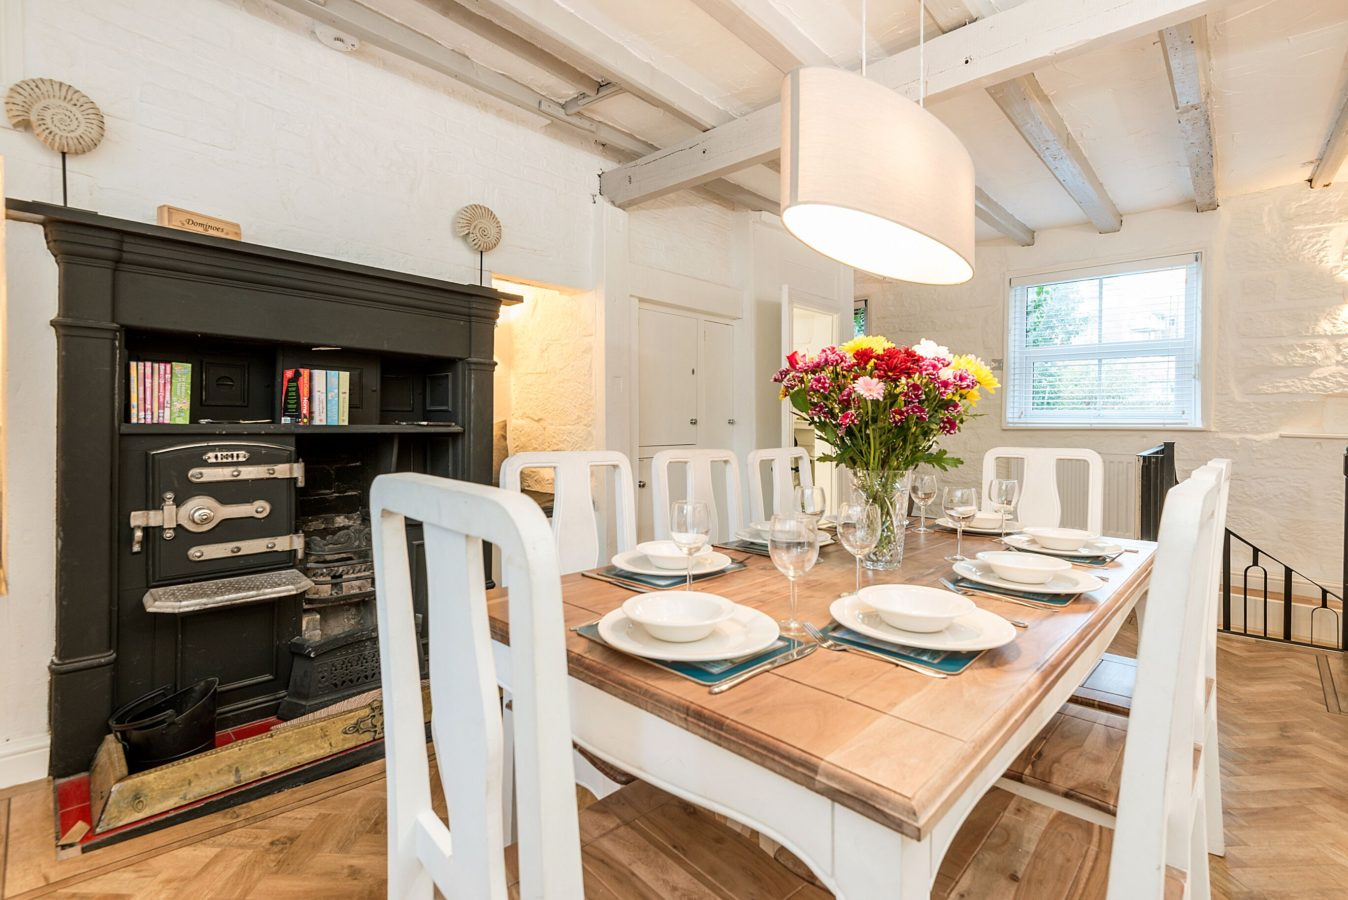 Whitby cottage holiday, Cottage close to town and beach in Whitby, holiday rental Whitby.